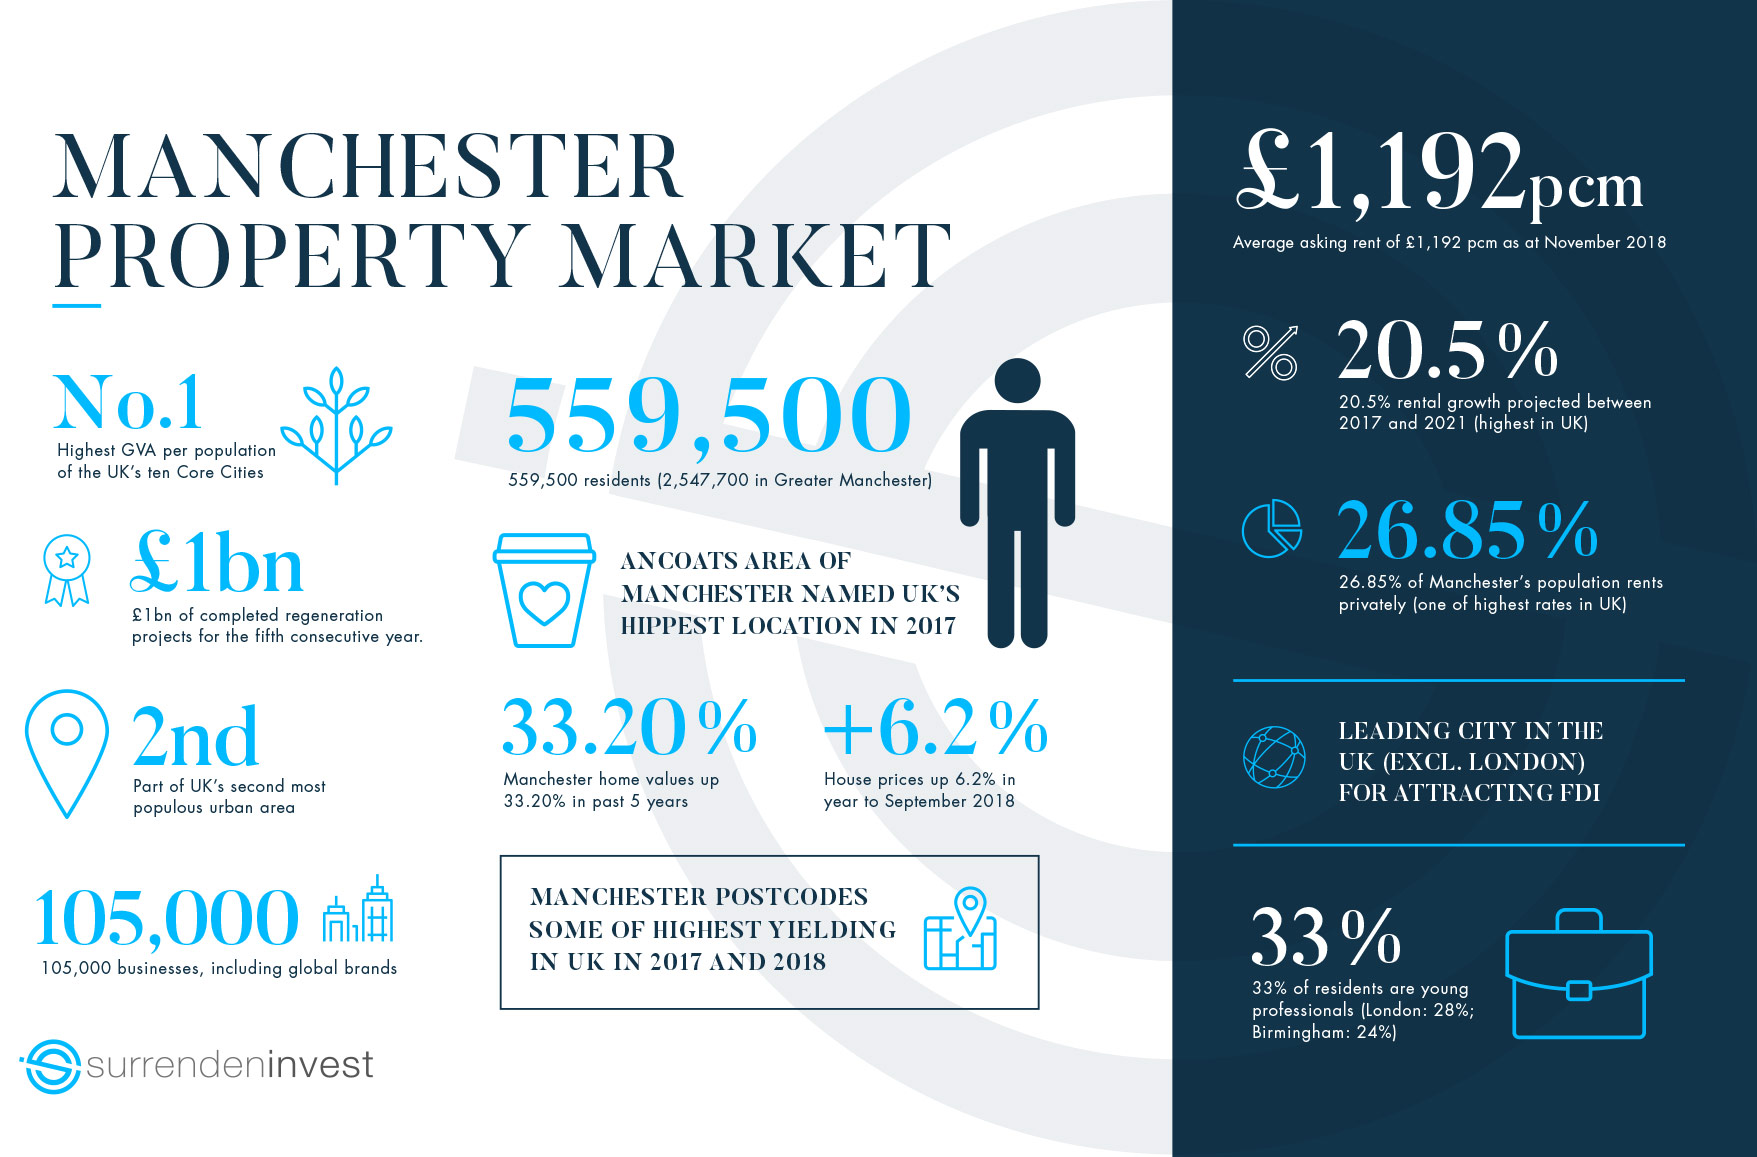 Surrenden Invest Manchester Property Market Infographic 2018